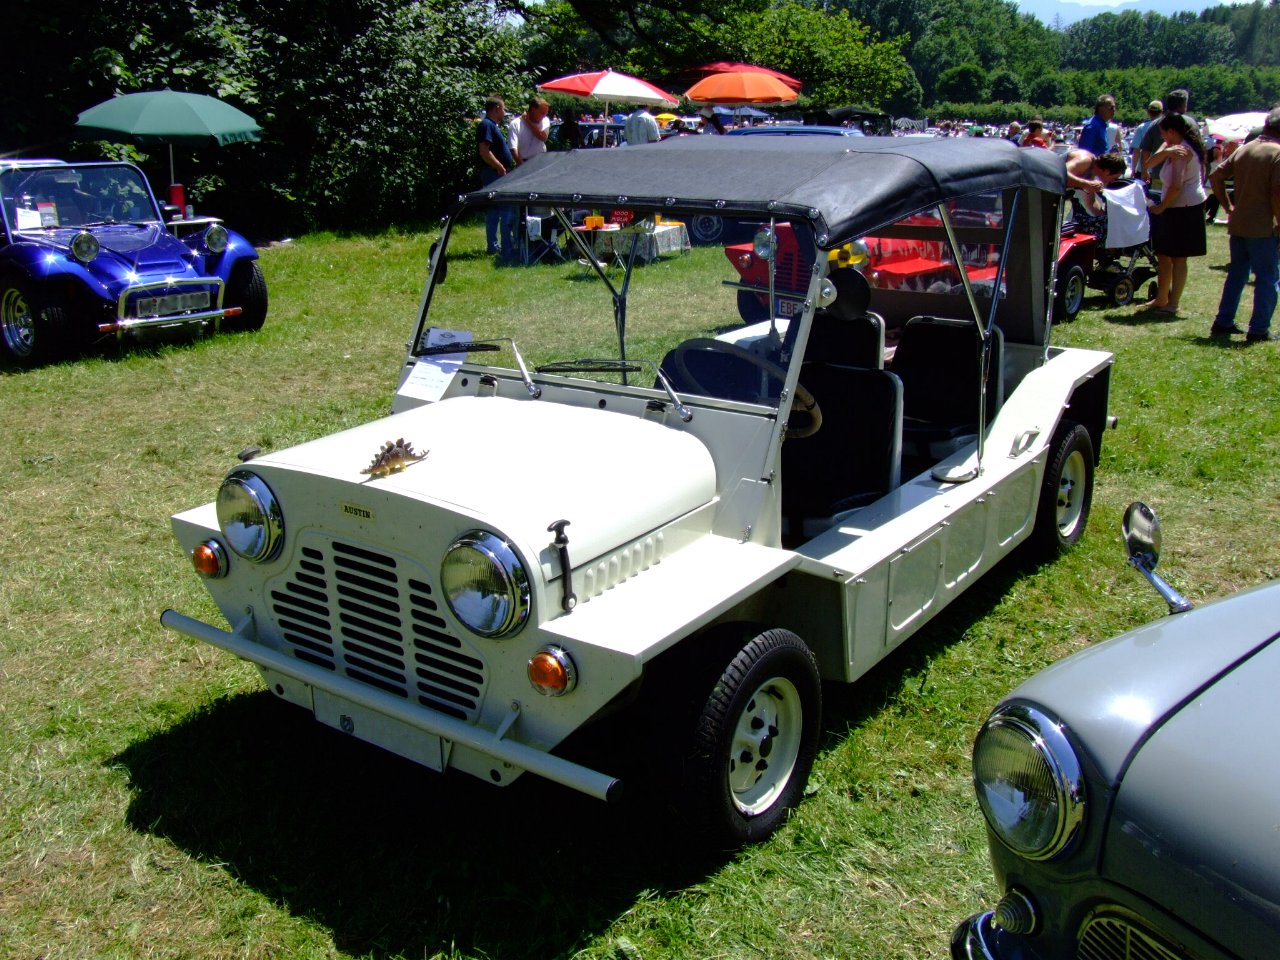 http://upload.wikimedia.org/wikipedia/commons/c/c5/Austin_Mini_Moke_1967.JPG